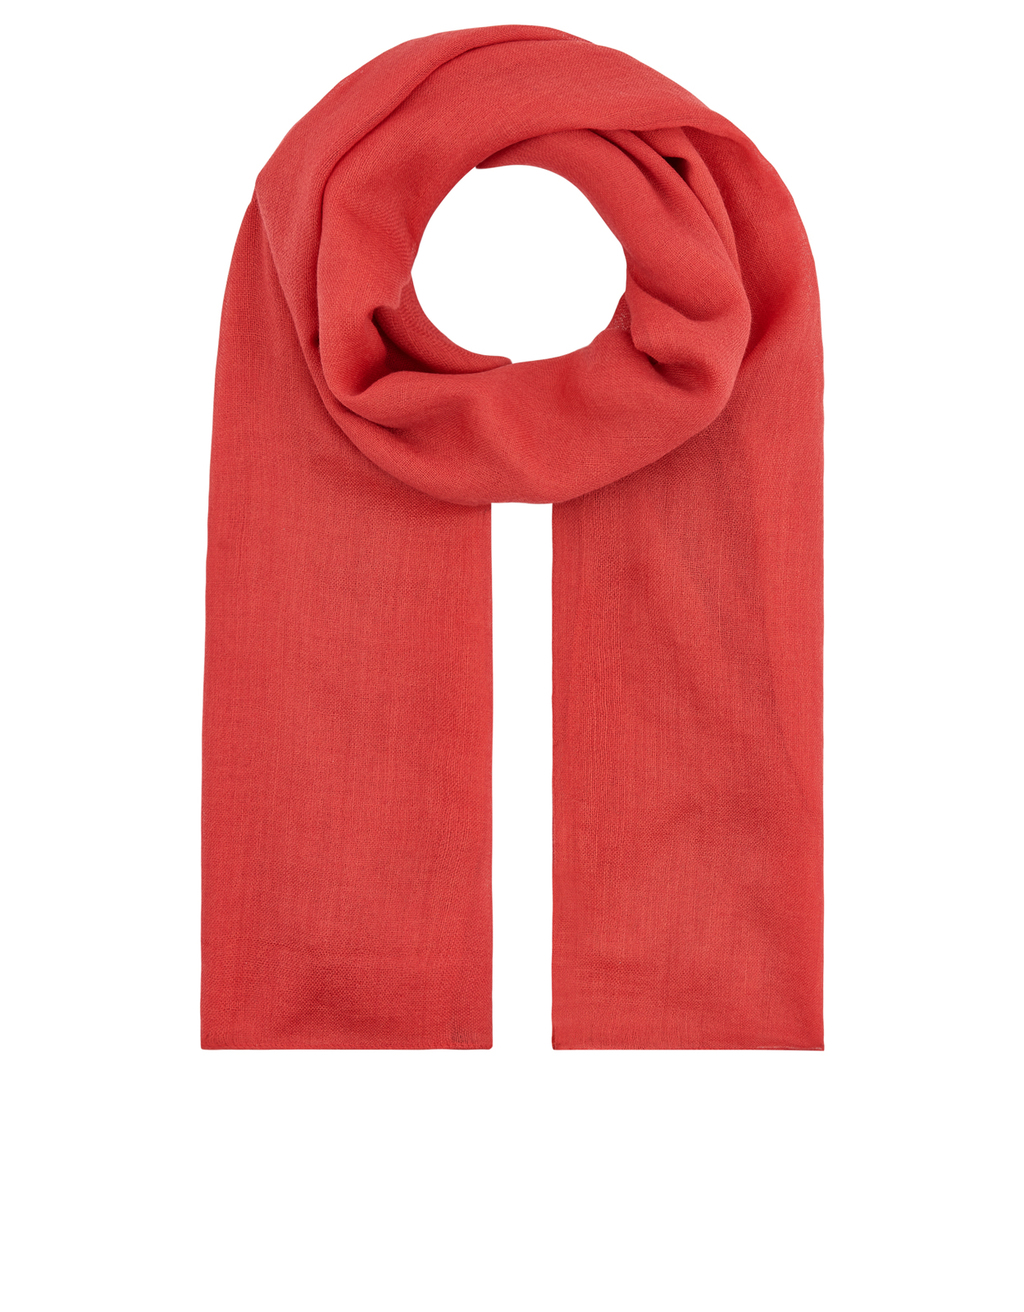 Ombre Wool Scarf - predominant colour: bright orange; occasions: casual; type of pattern: standard; style: regular; size: standard; material: fabric; pattern: plain; season: a/w 2016; wardrobe: highlight